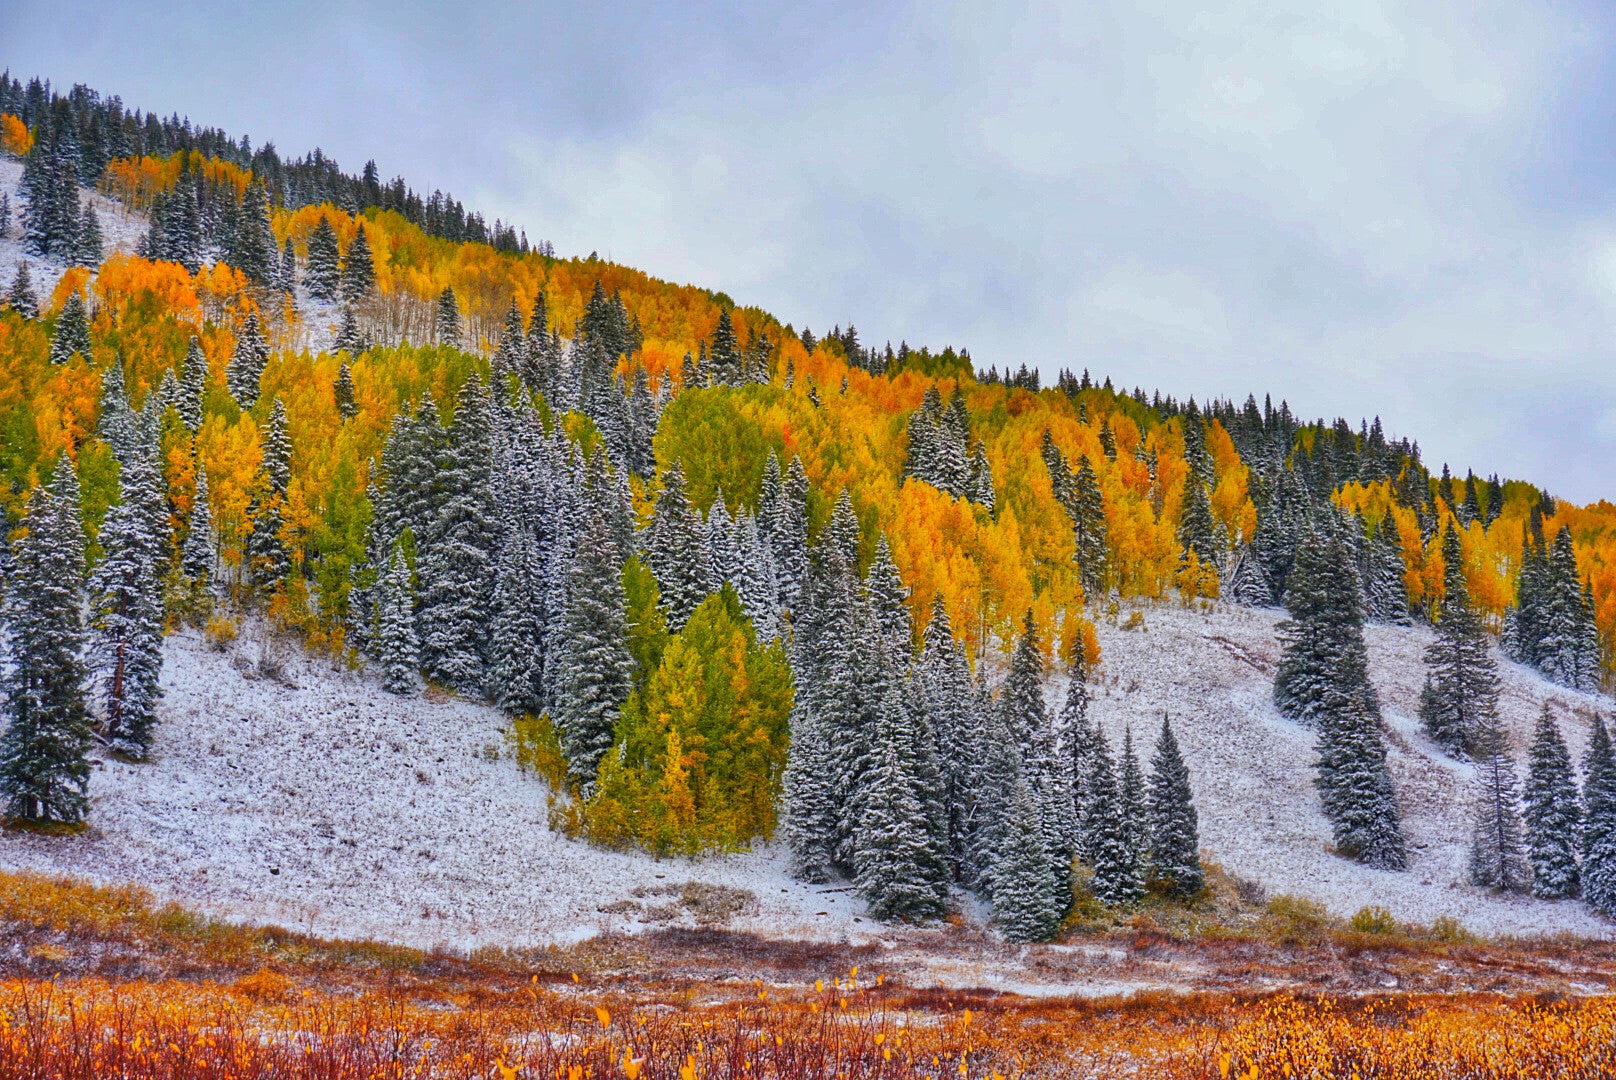 A Week of Fall Foolin' in Crested Butte